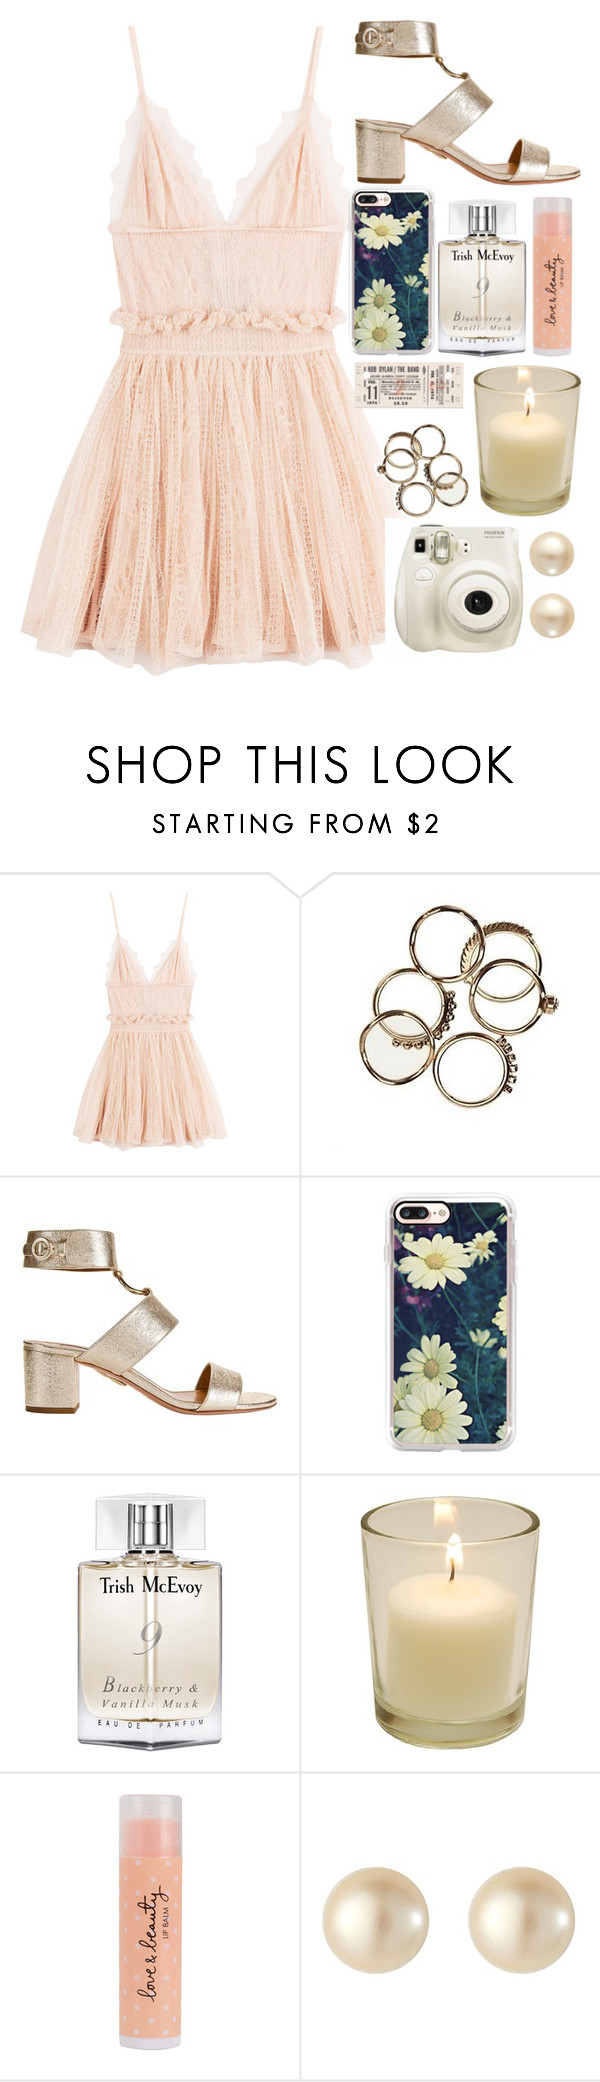 """Hope"" by rosiee22 ❤ liked on Polyvore featuring Alexander McQueen, Aquazzura, Casetify, Trish McEvoy, Forever 21, Fujifilm and VIcenza"